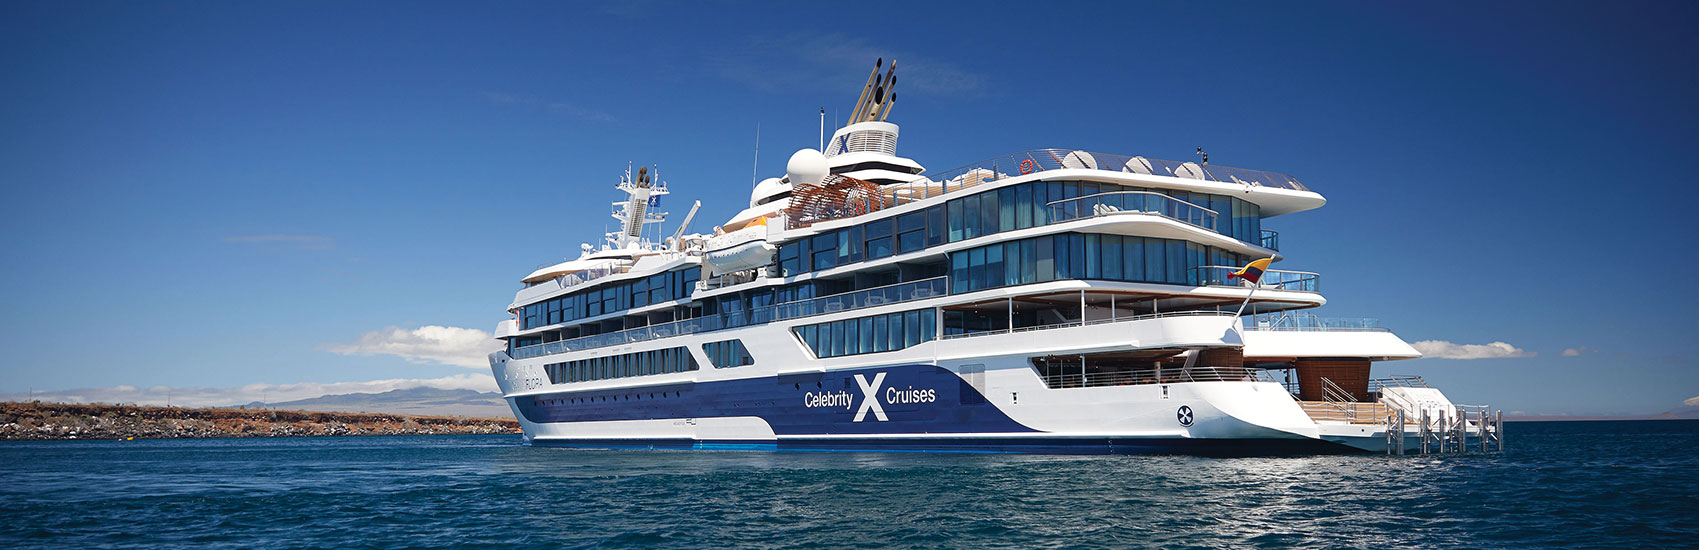 Explore the Galapagos on an All Suite Luxury Mega Yacht 0